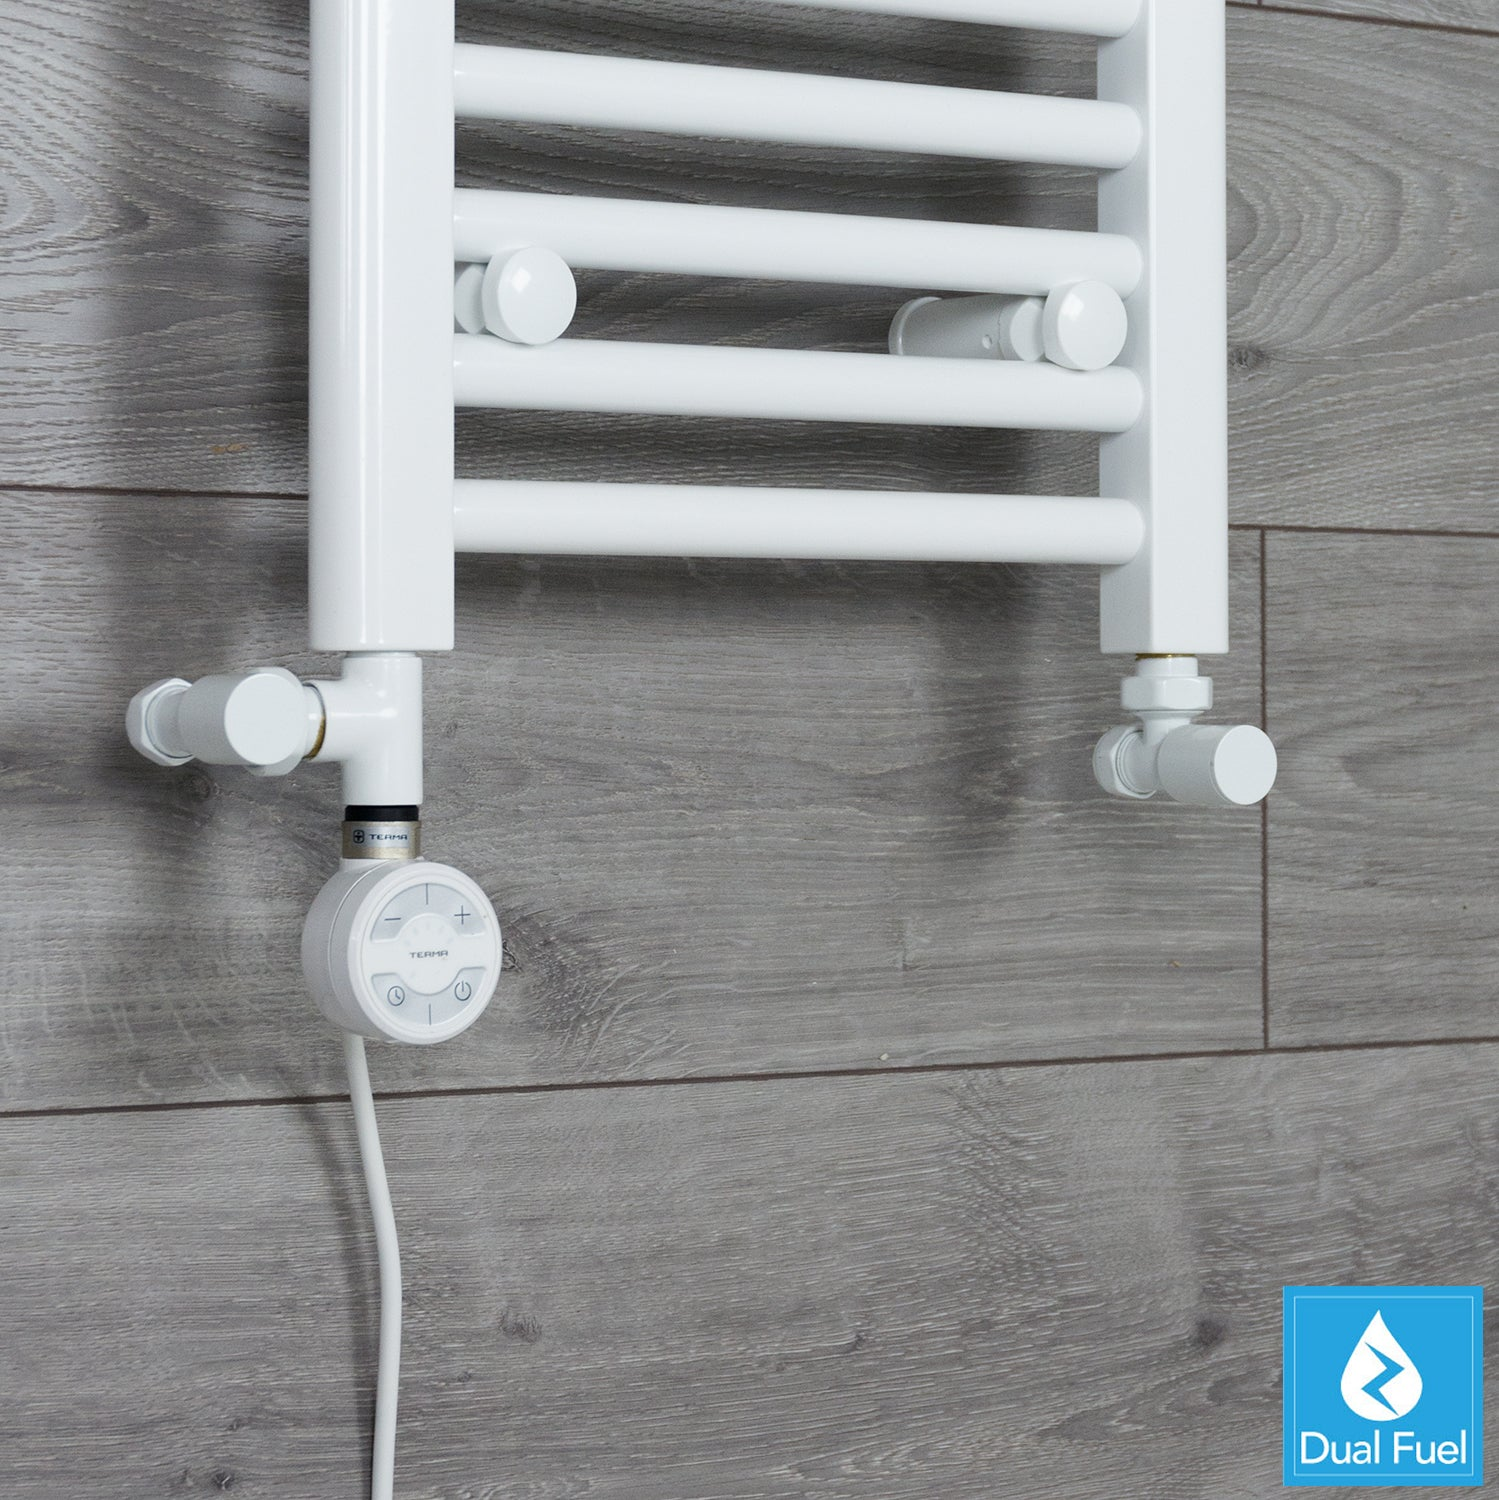 Dual Fuel Kit White Thermostatic Heating Element - Moa for Heated Towel Rail Radiator